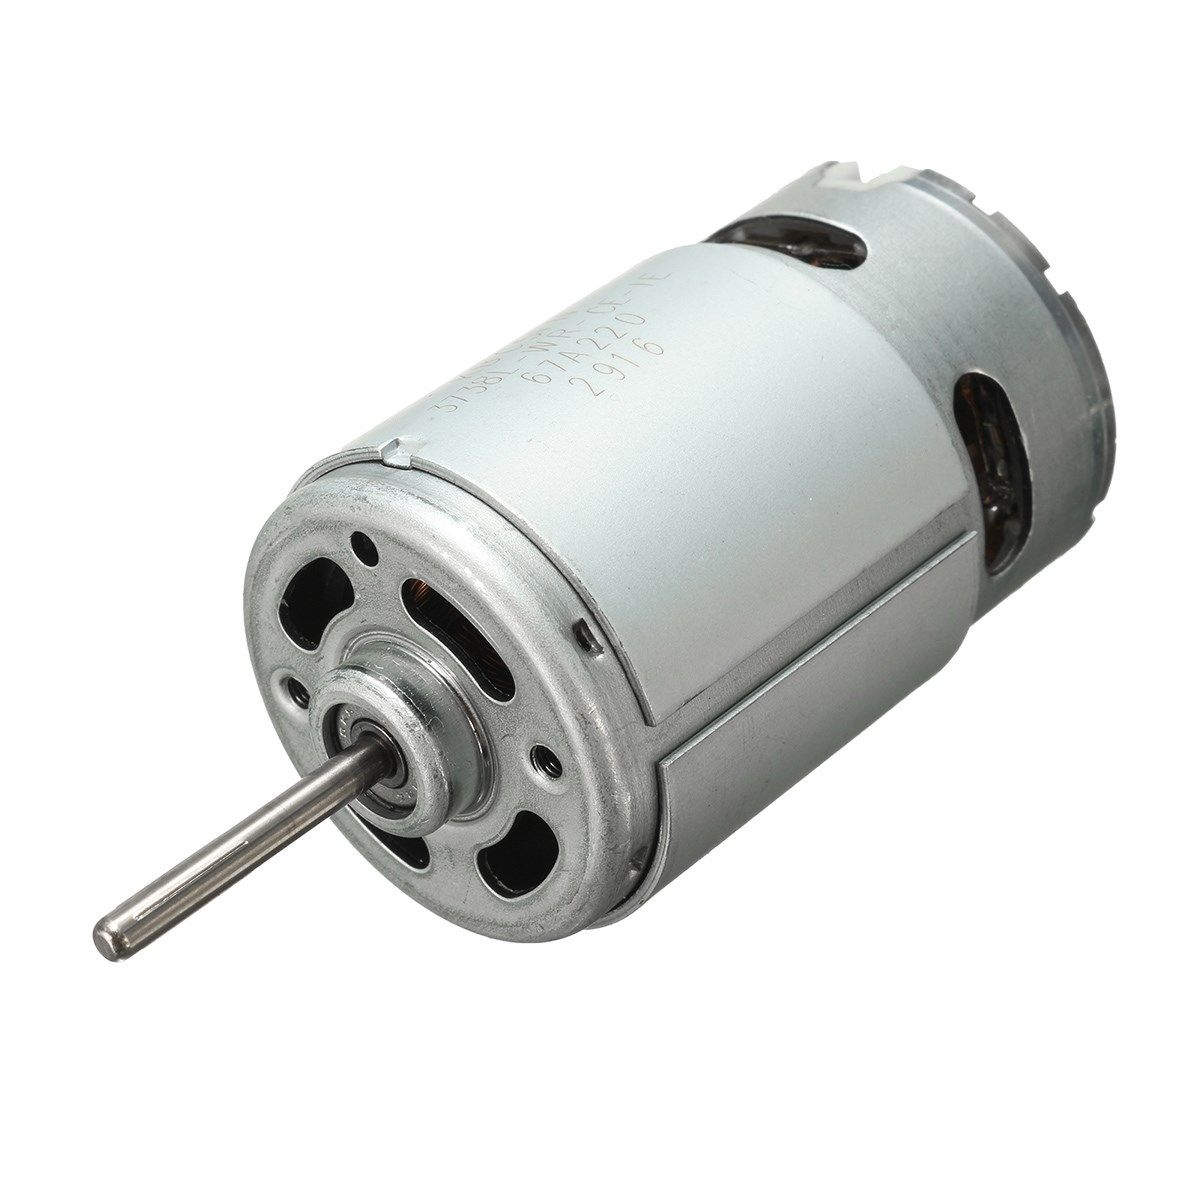 1PCS DC12-24V 555 Ball Bearing Electric Motor 2900RPM Large High Torque Strength and Wear Resistance